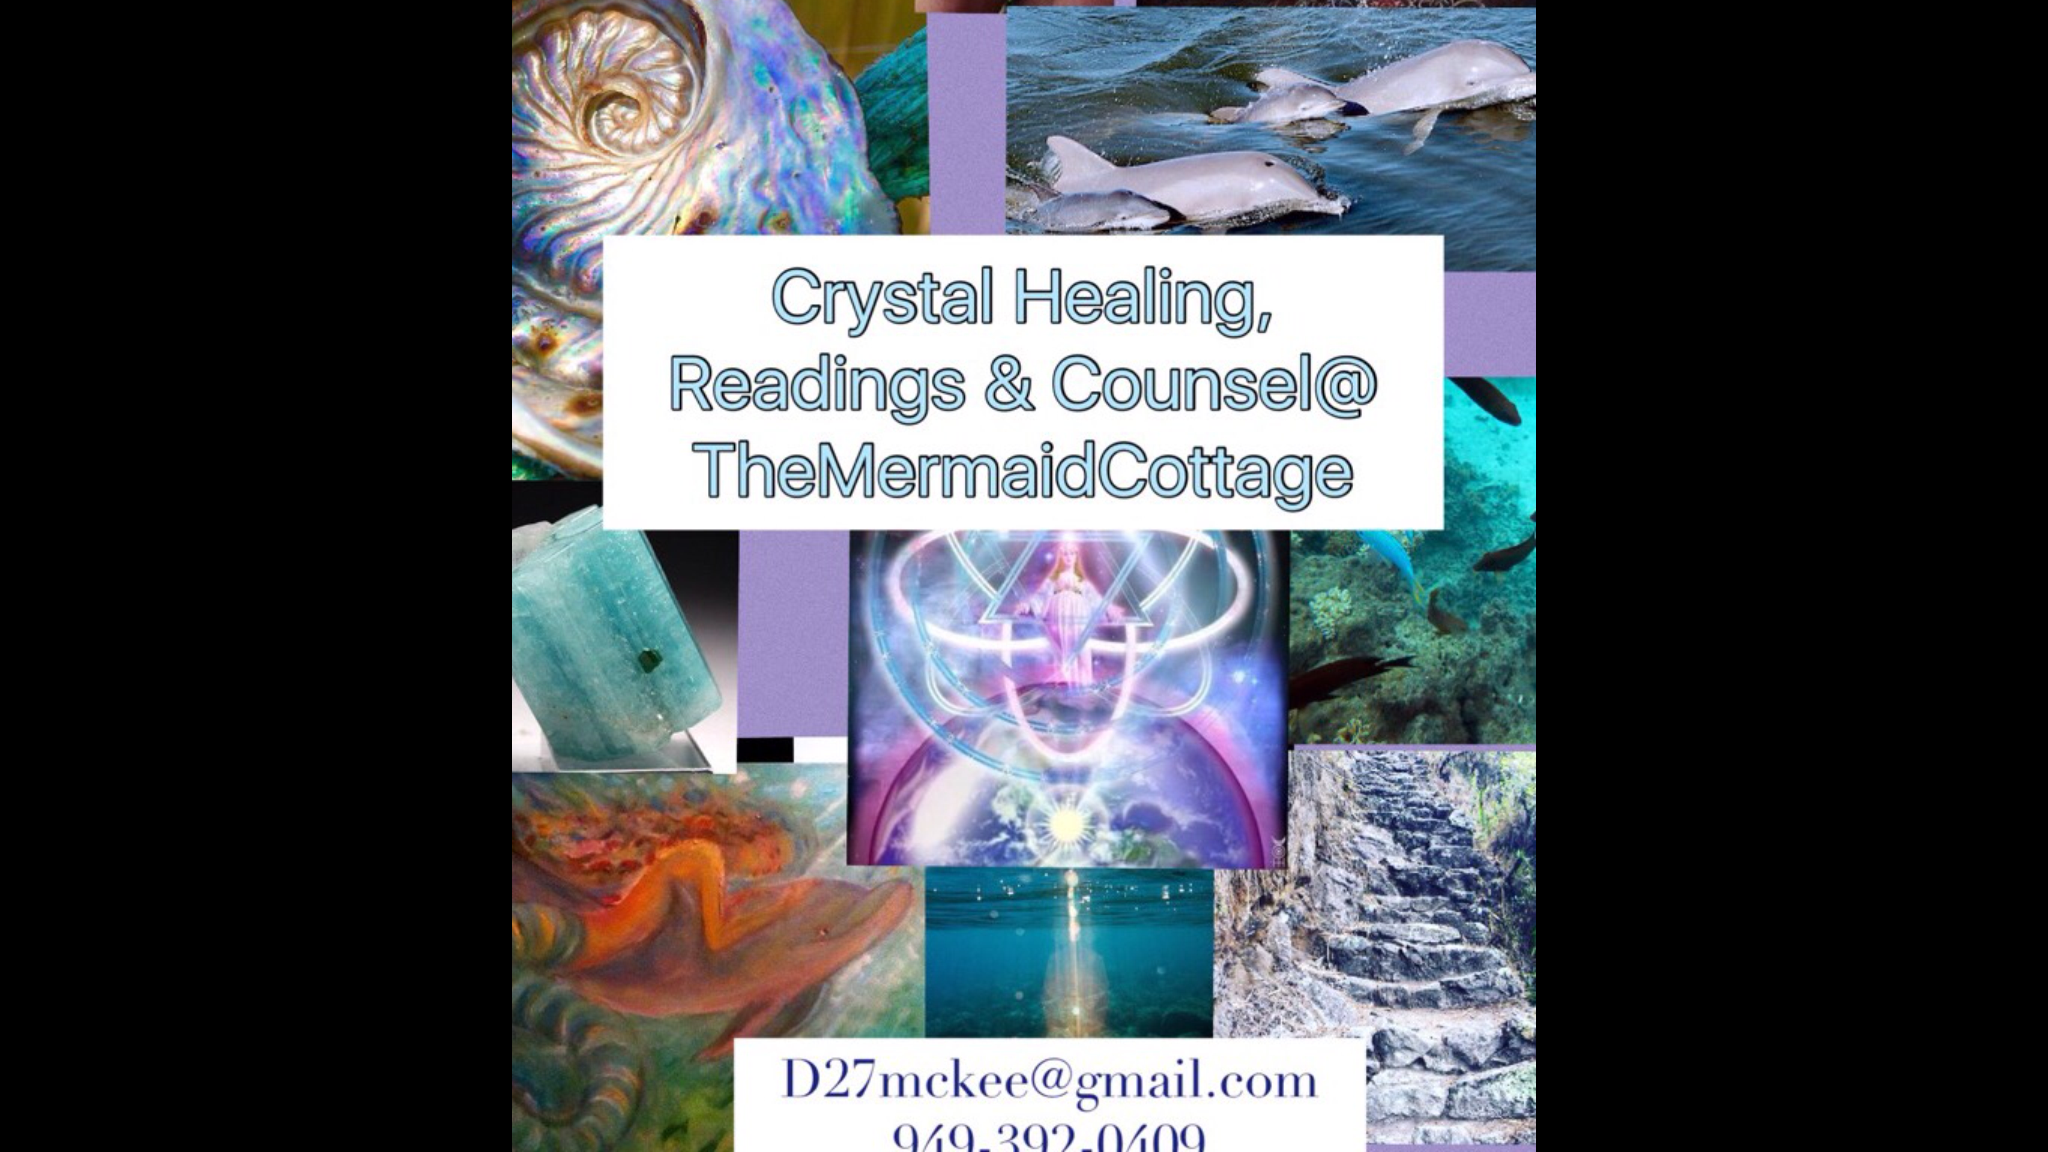 Lemurian Crystal Energy Workshops by the Sea!